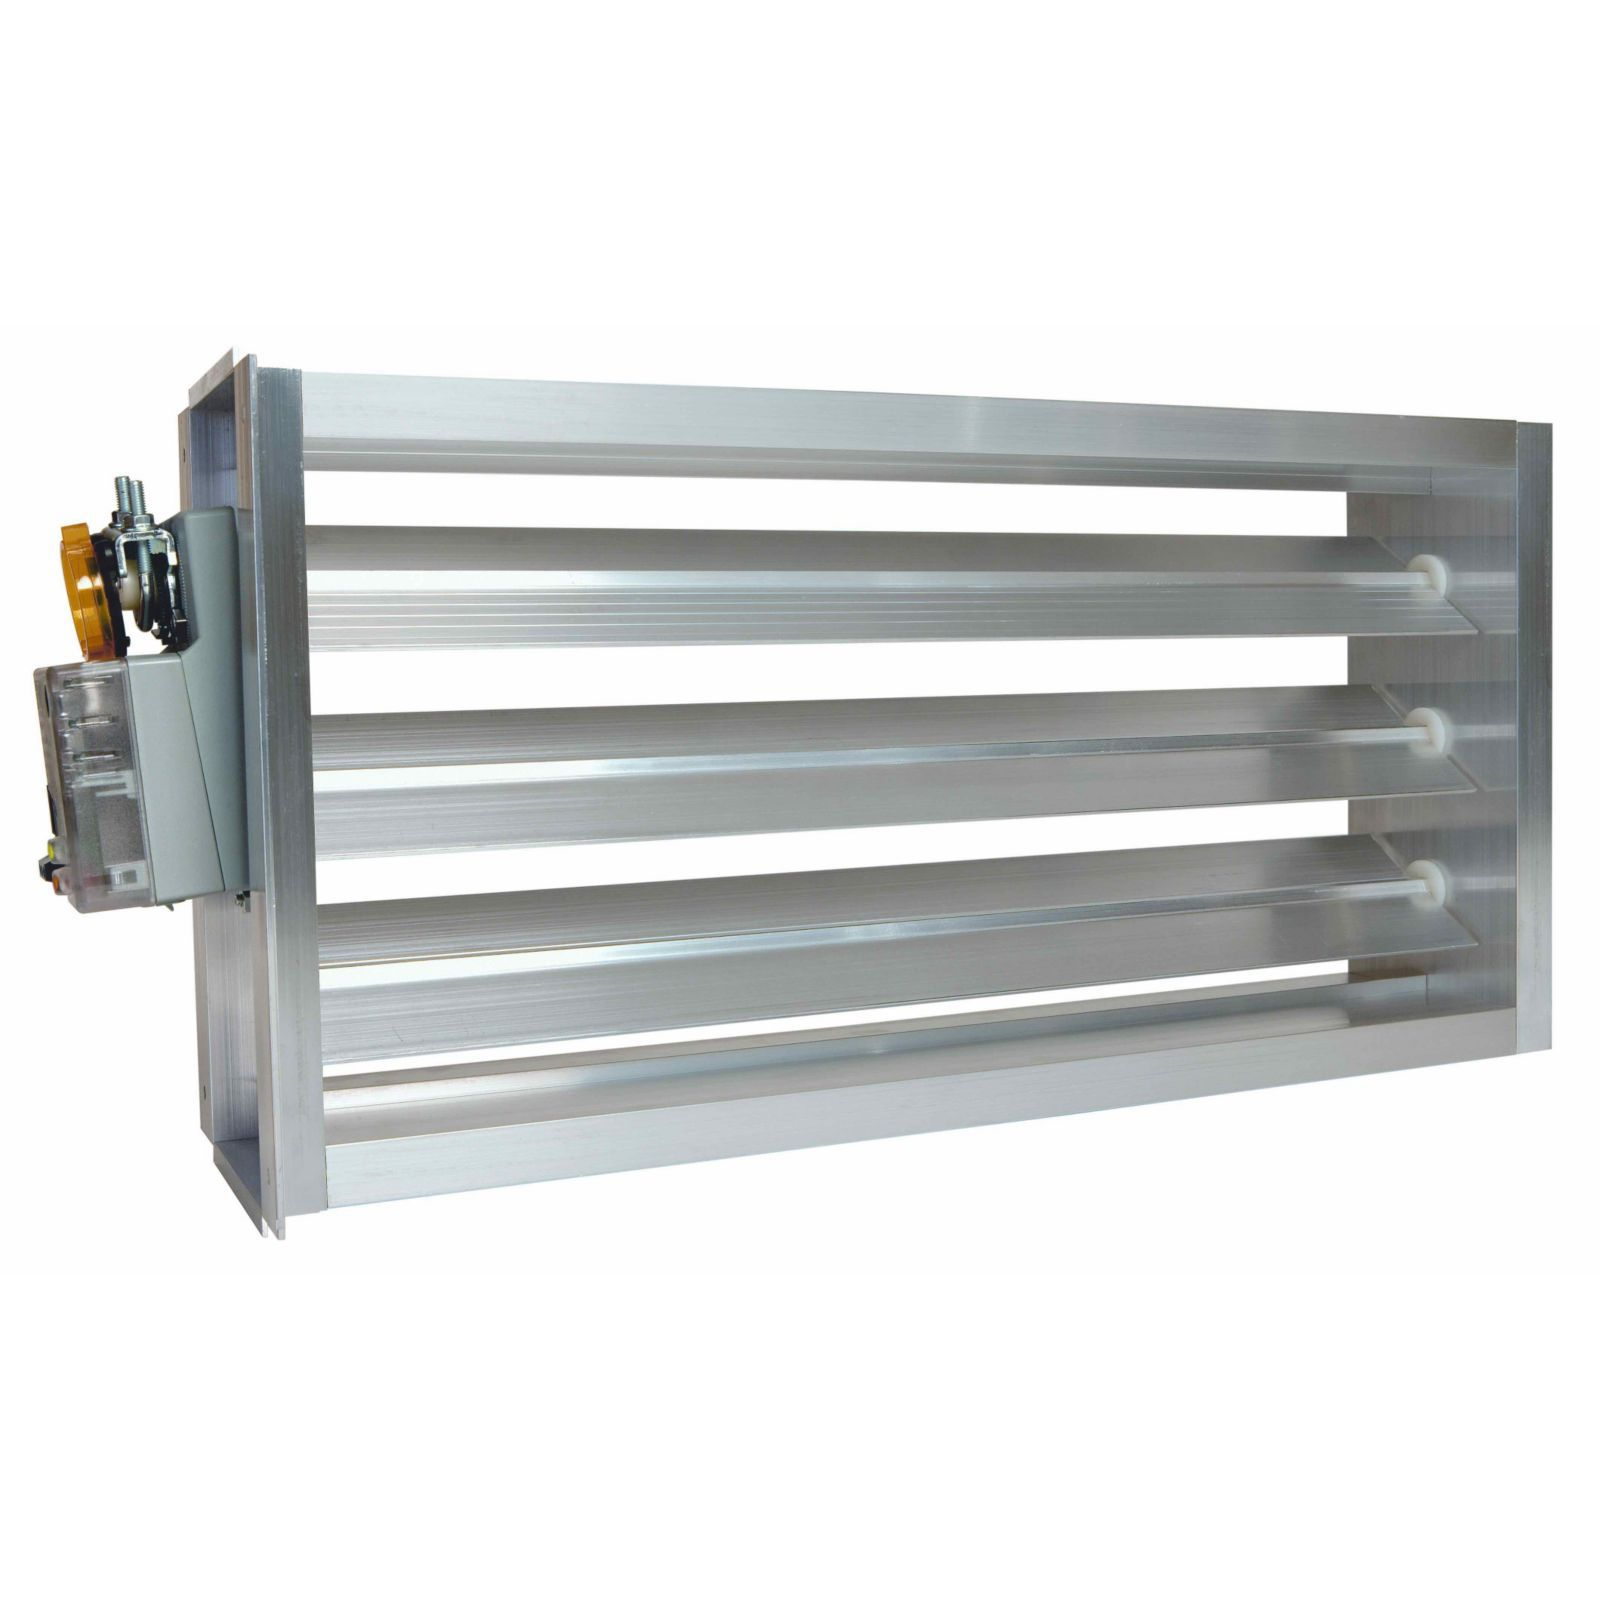 "EWC 10X18 ND - Motorized Ultra-Zone Damper, 10"" X 18"""